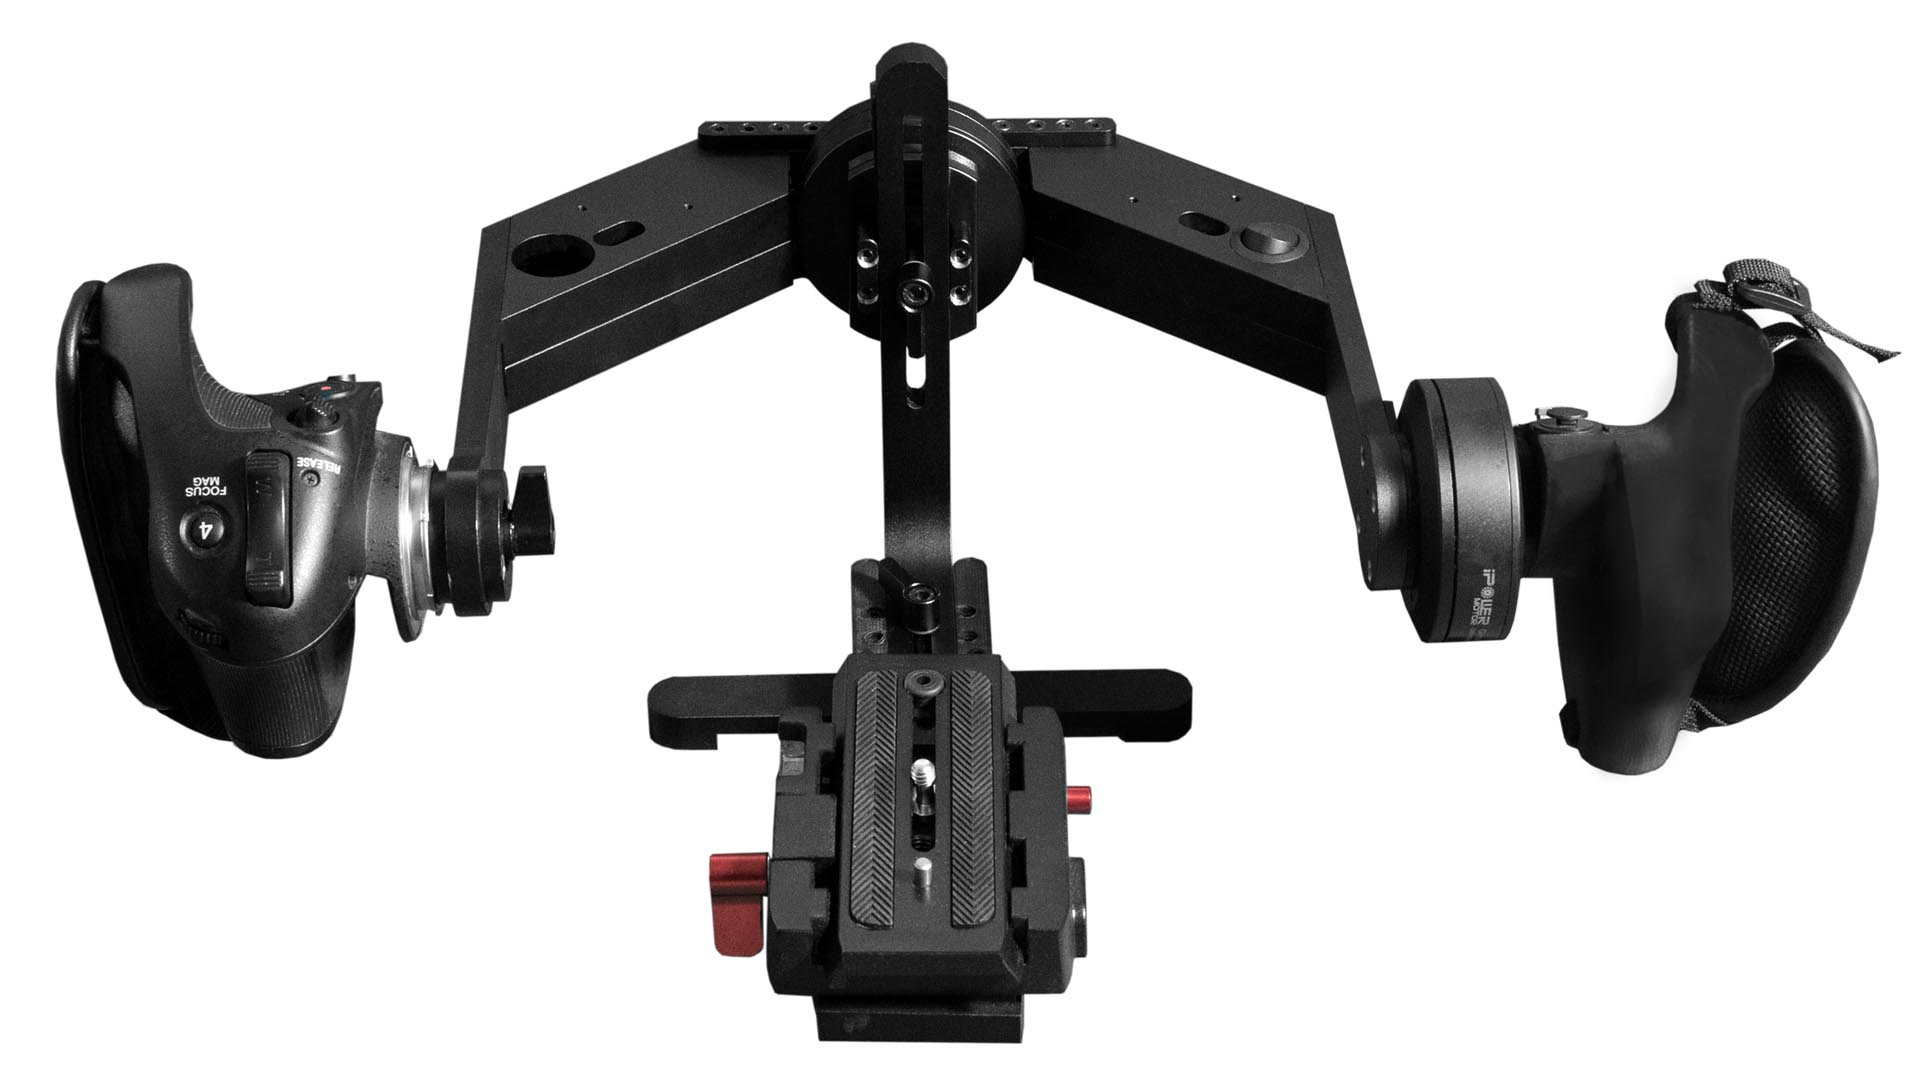 icecam gimbal tiny super 35 4